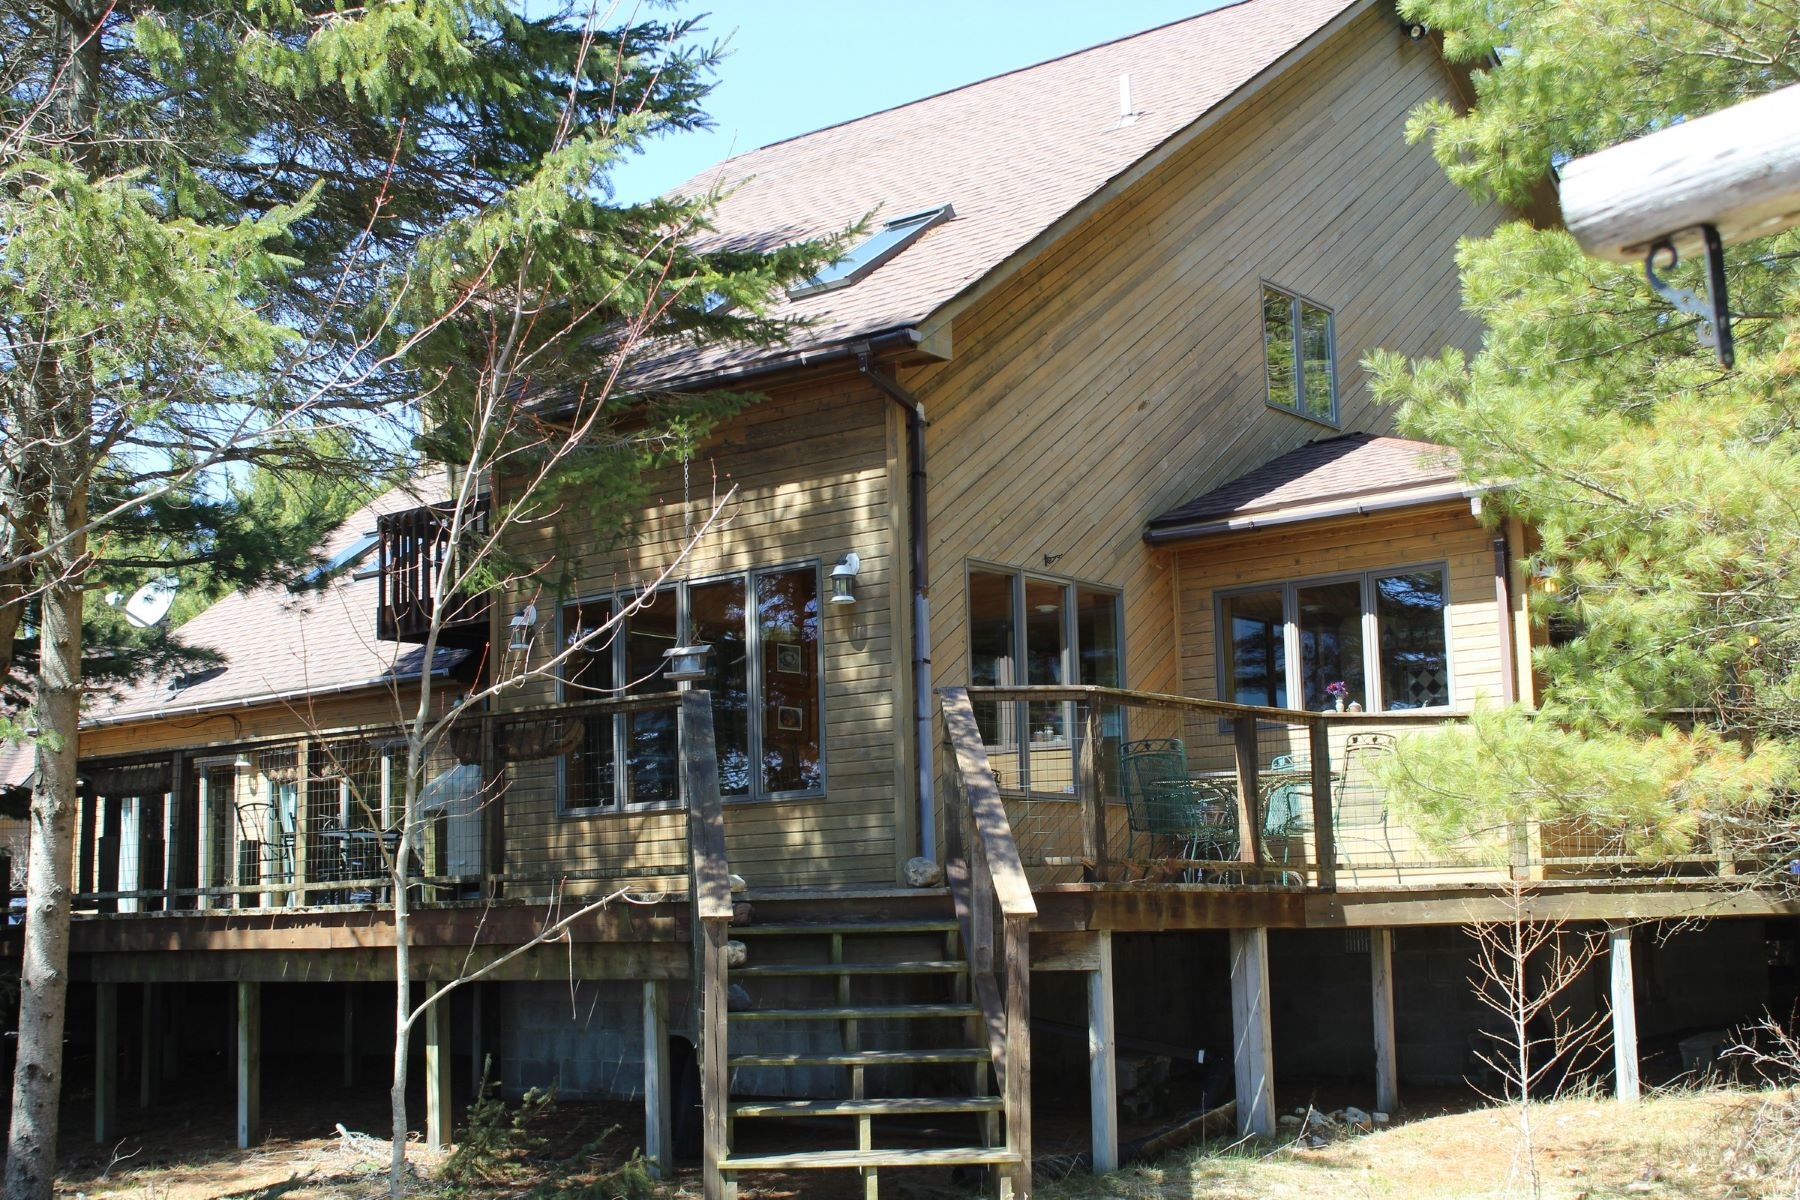 Single Family Homes for Active at Upper Peninsula Lake Michigan waterfront home 7801 West US 2 Naubinway, Michigan 49762 United States